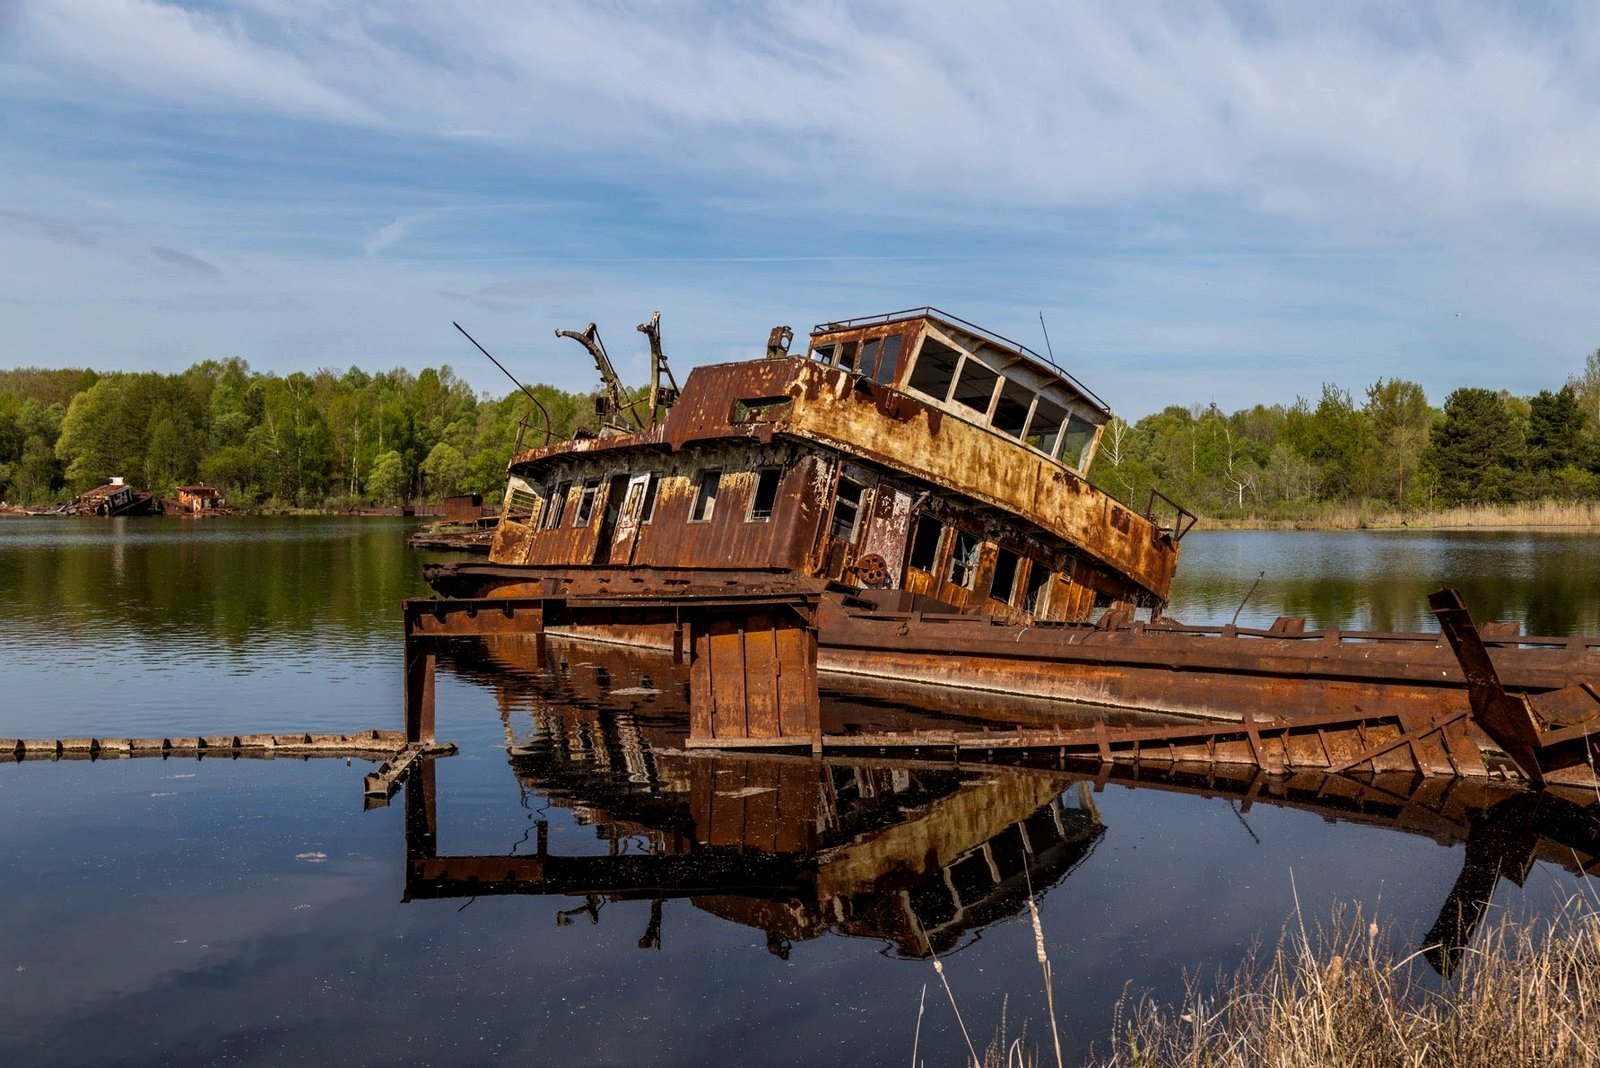 Cemetery of barges and abandoned ships, Chernobyl